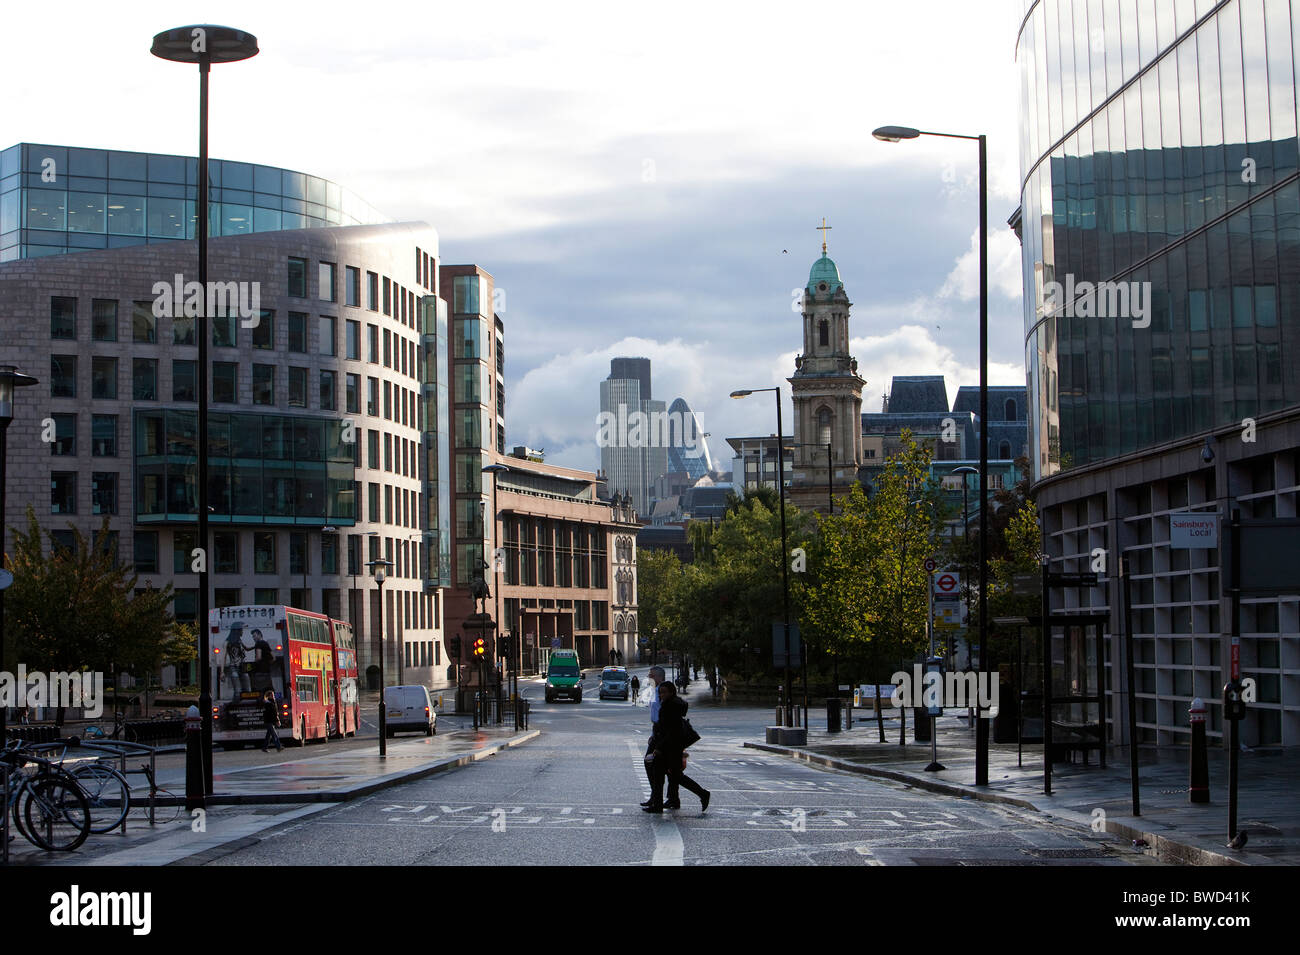 View of the city, London, UK - Stock Image